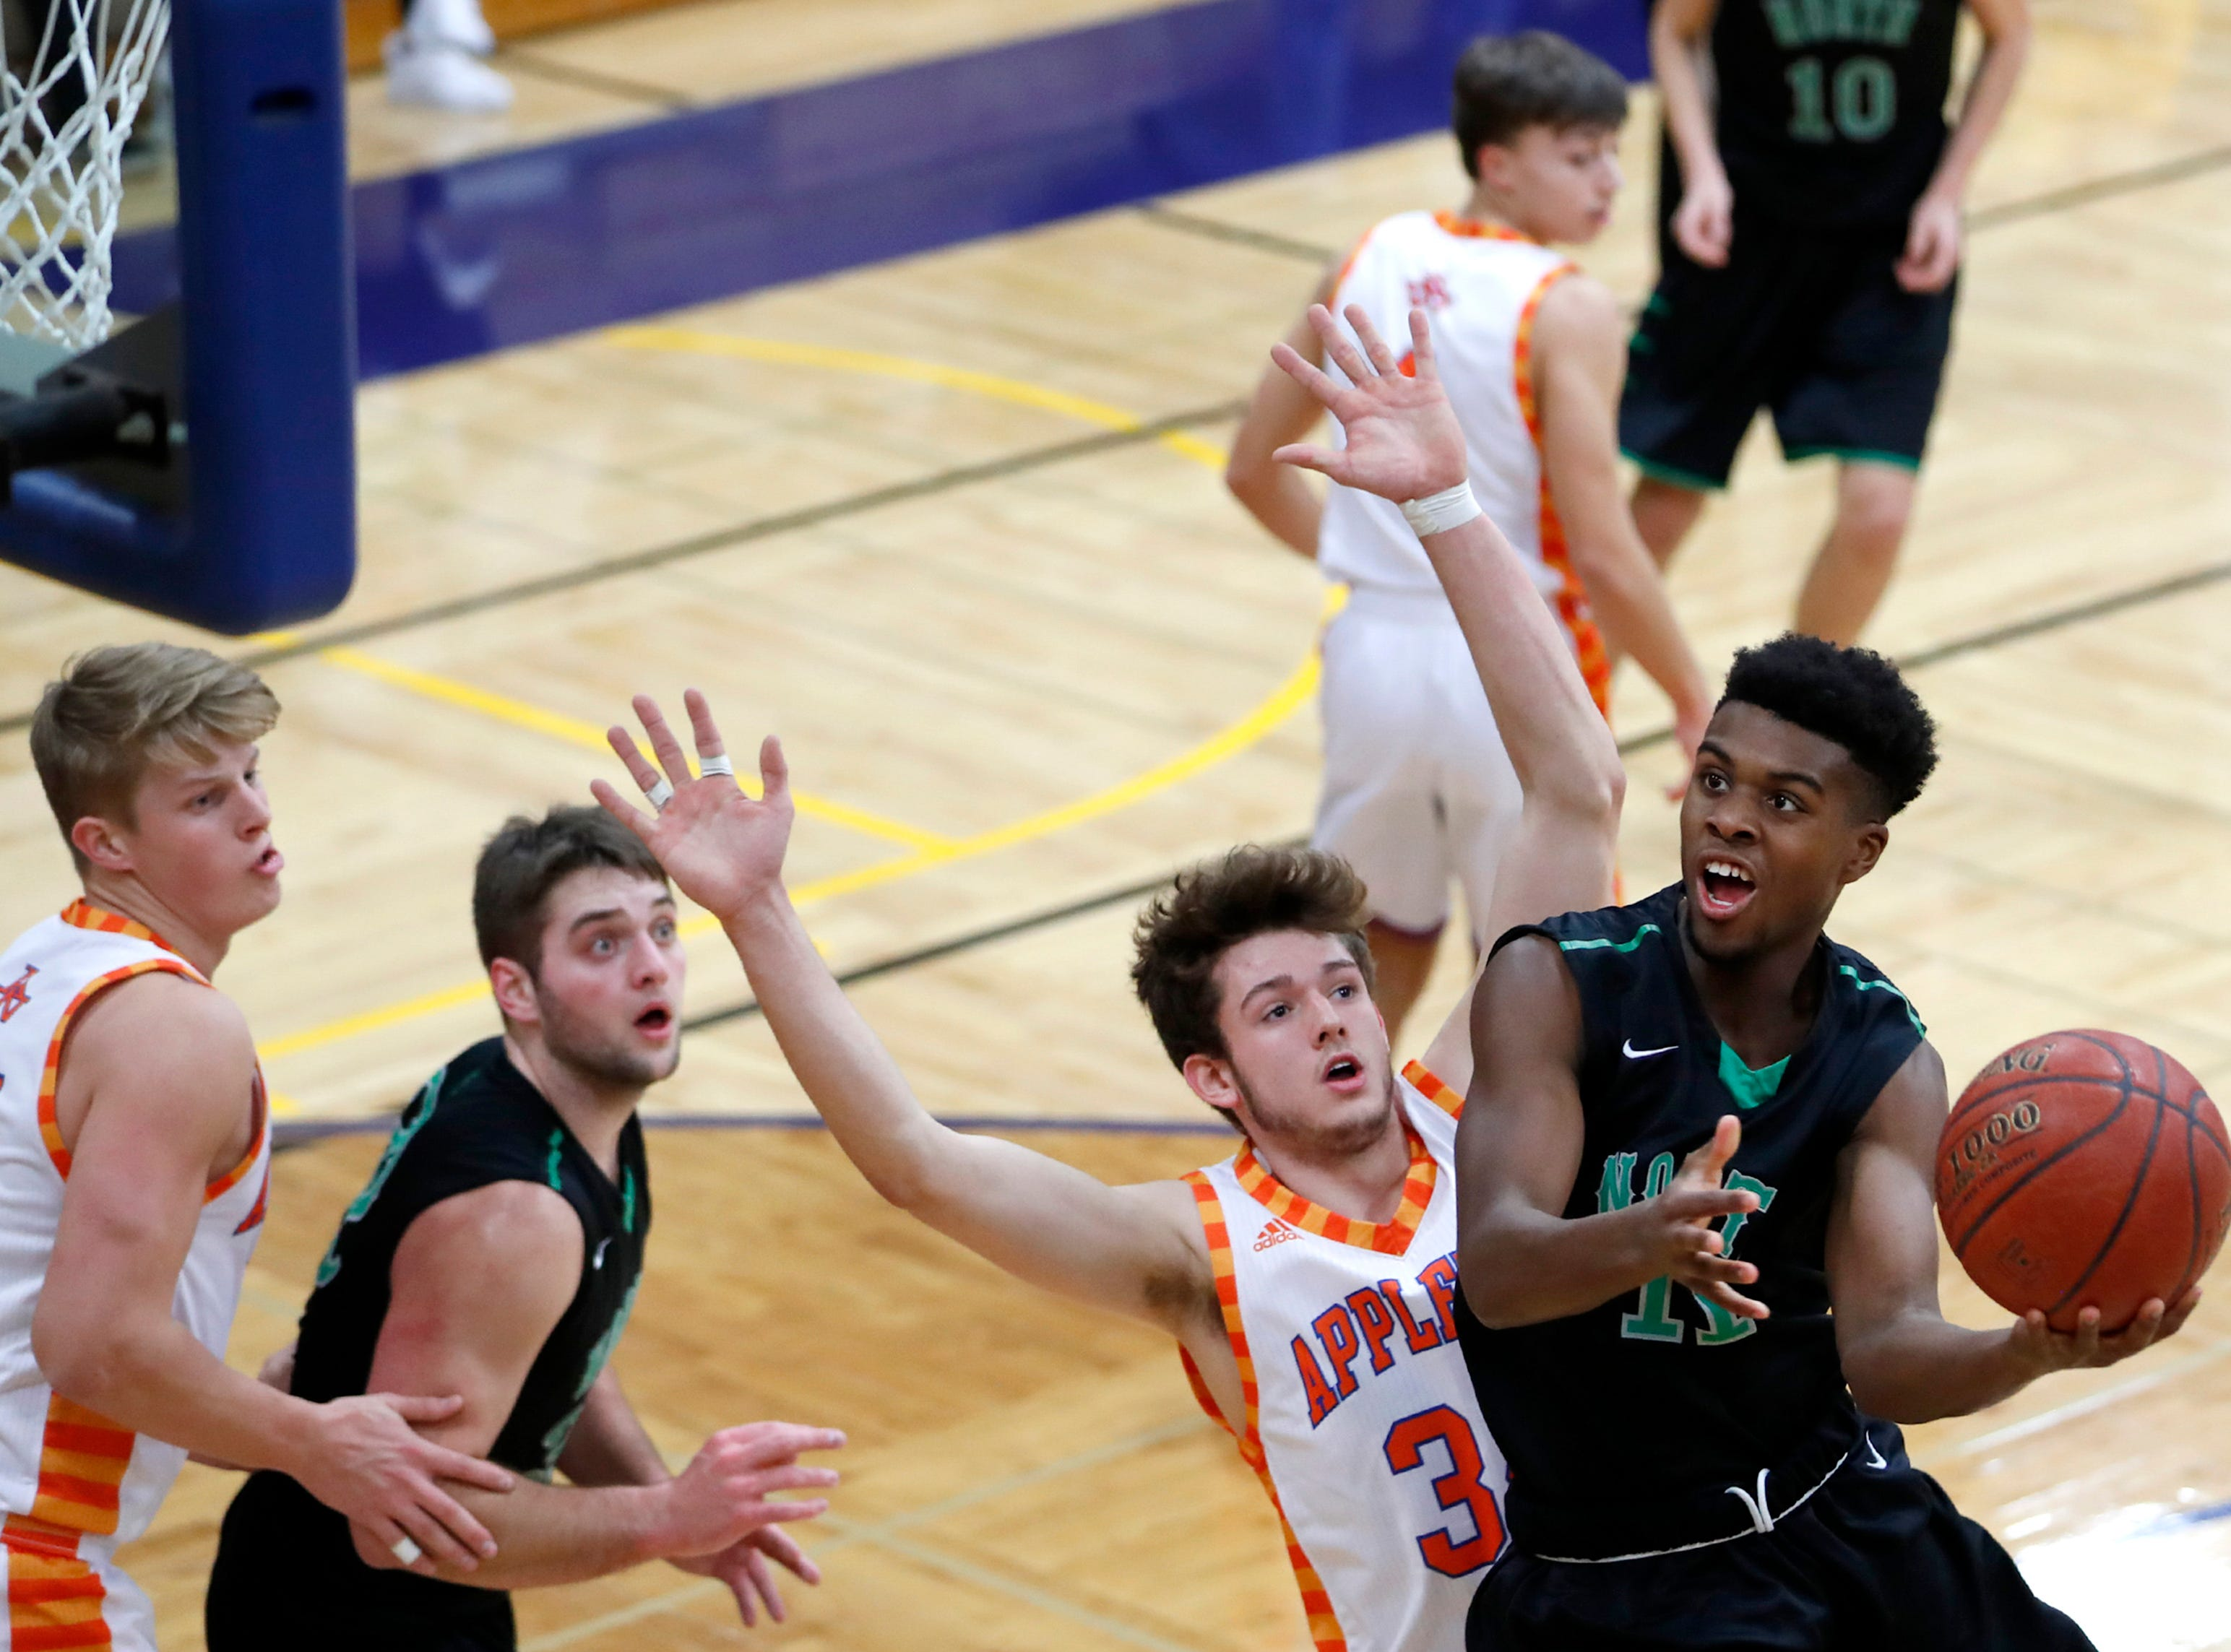 Oshkosh North High SchoolÕs Abraham Schiek jumps toward the basket for a layup during their game against Appleton West High School Tuesday, Jan. 15, 2019, at Appleton West High School in Appleton, Wis. Appleton West High School defeated Oshkosh North High School 72-63.